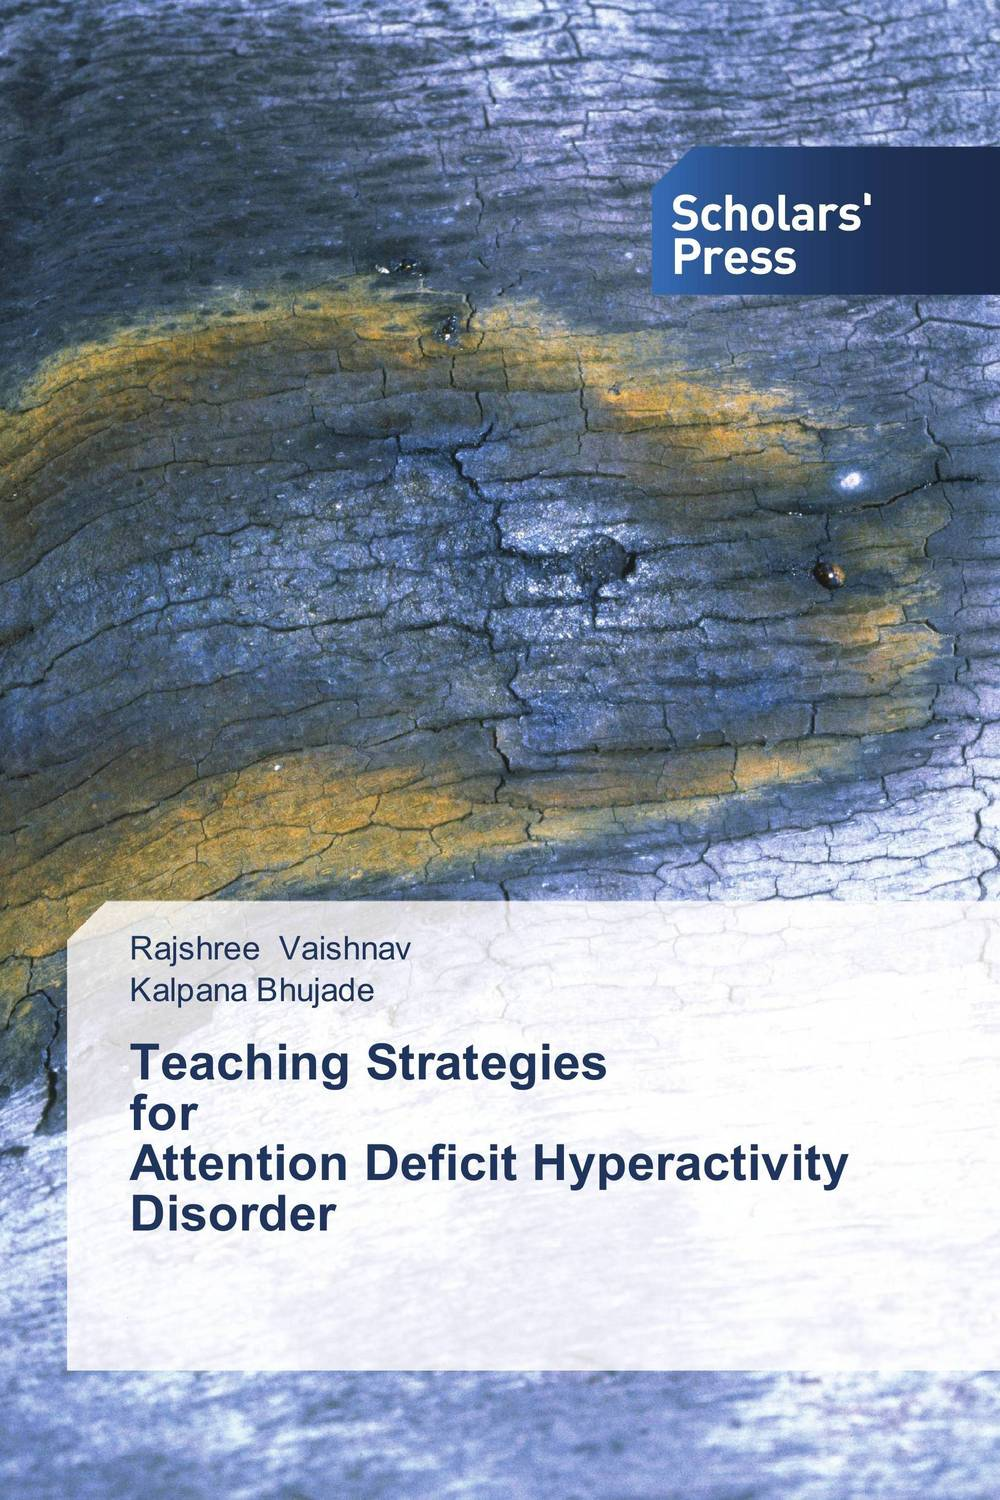 Teaching Strategies for Attention Deficit Hyperactivity Disorder temporomandibular disorder